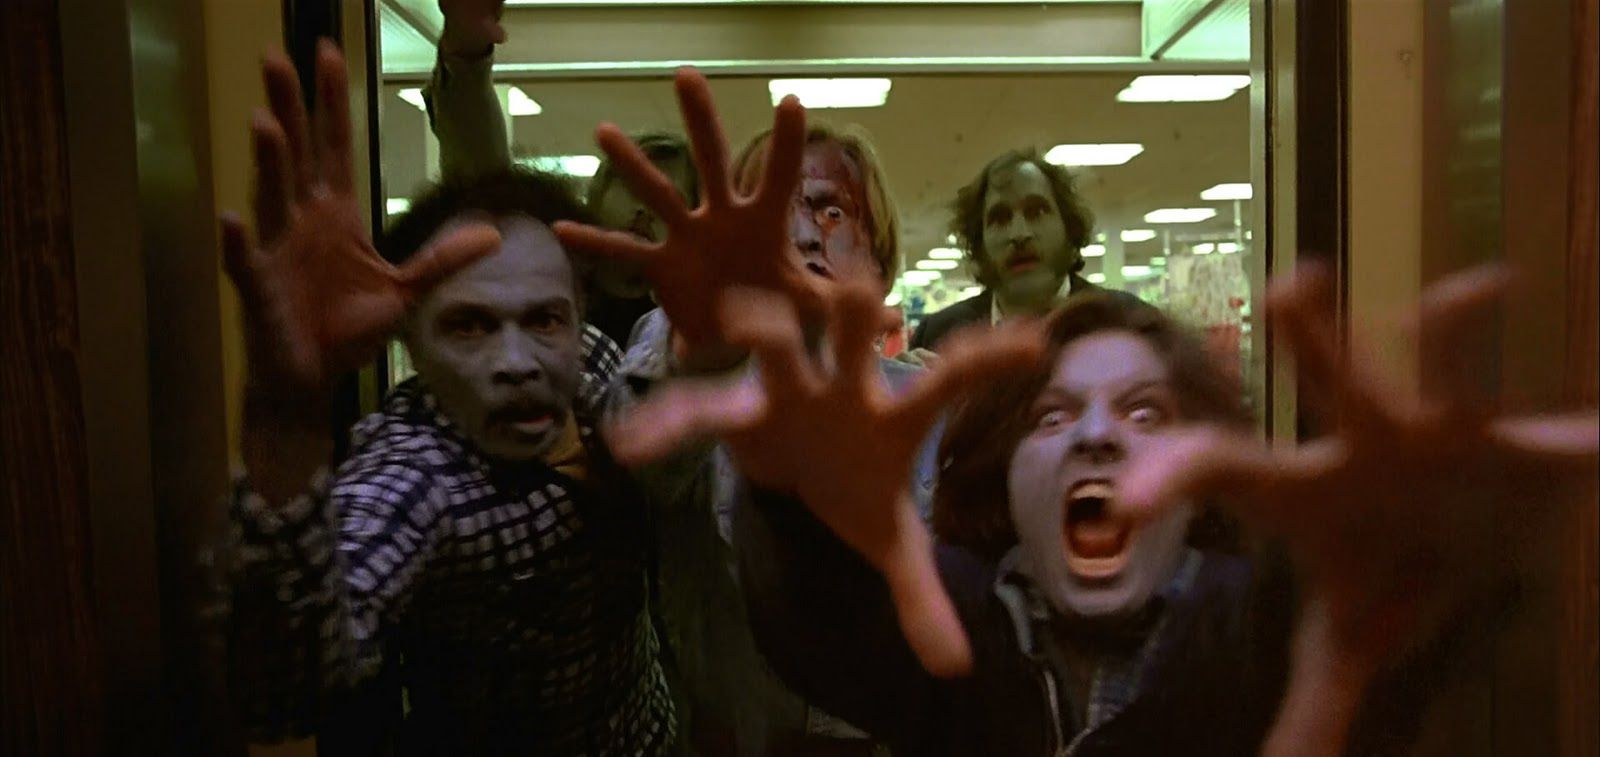 47 FILMS: 56. DAWN OF THE DEAD